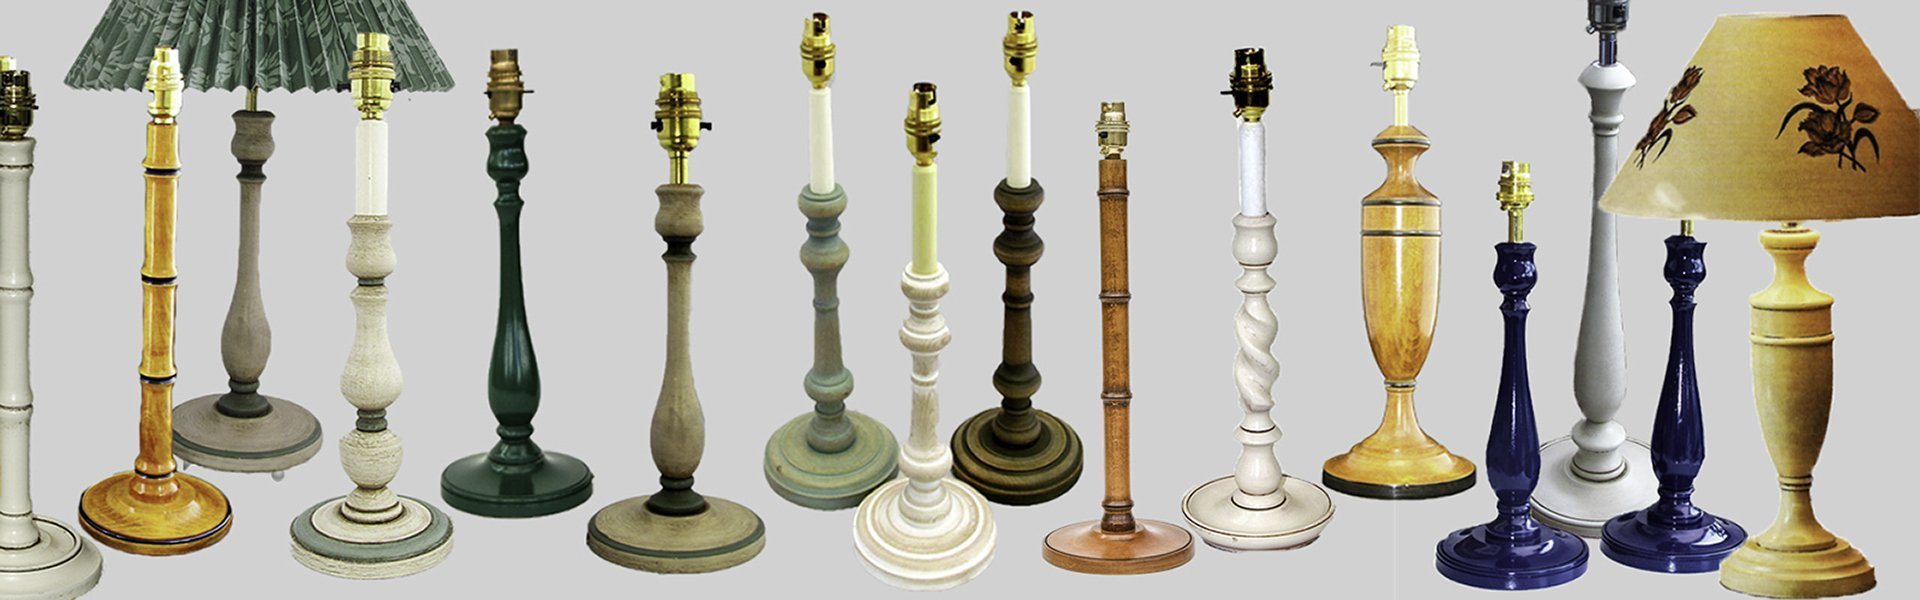 Our painted table lamps